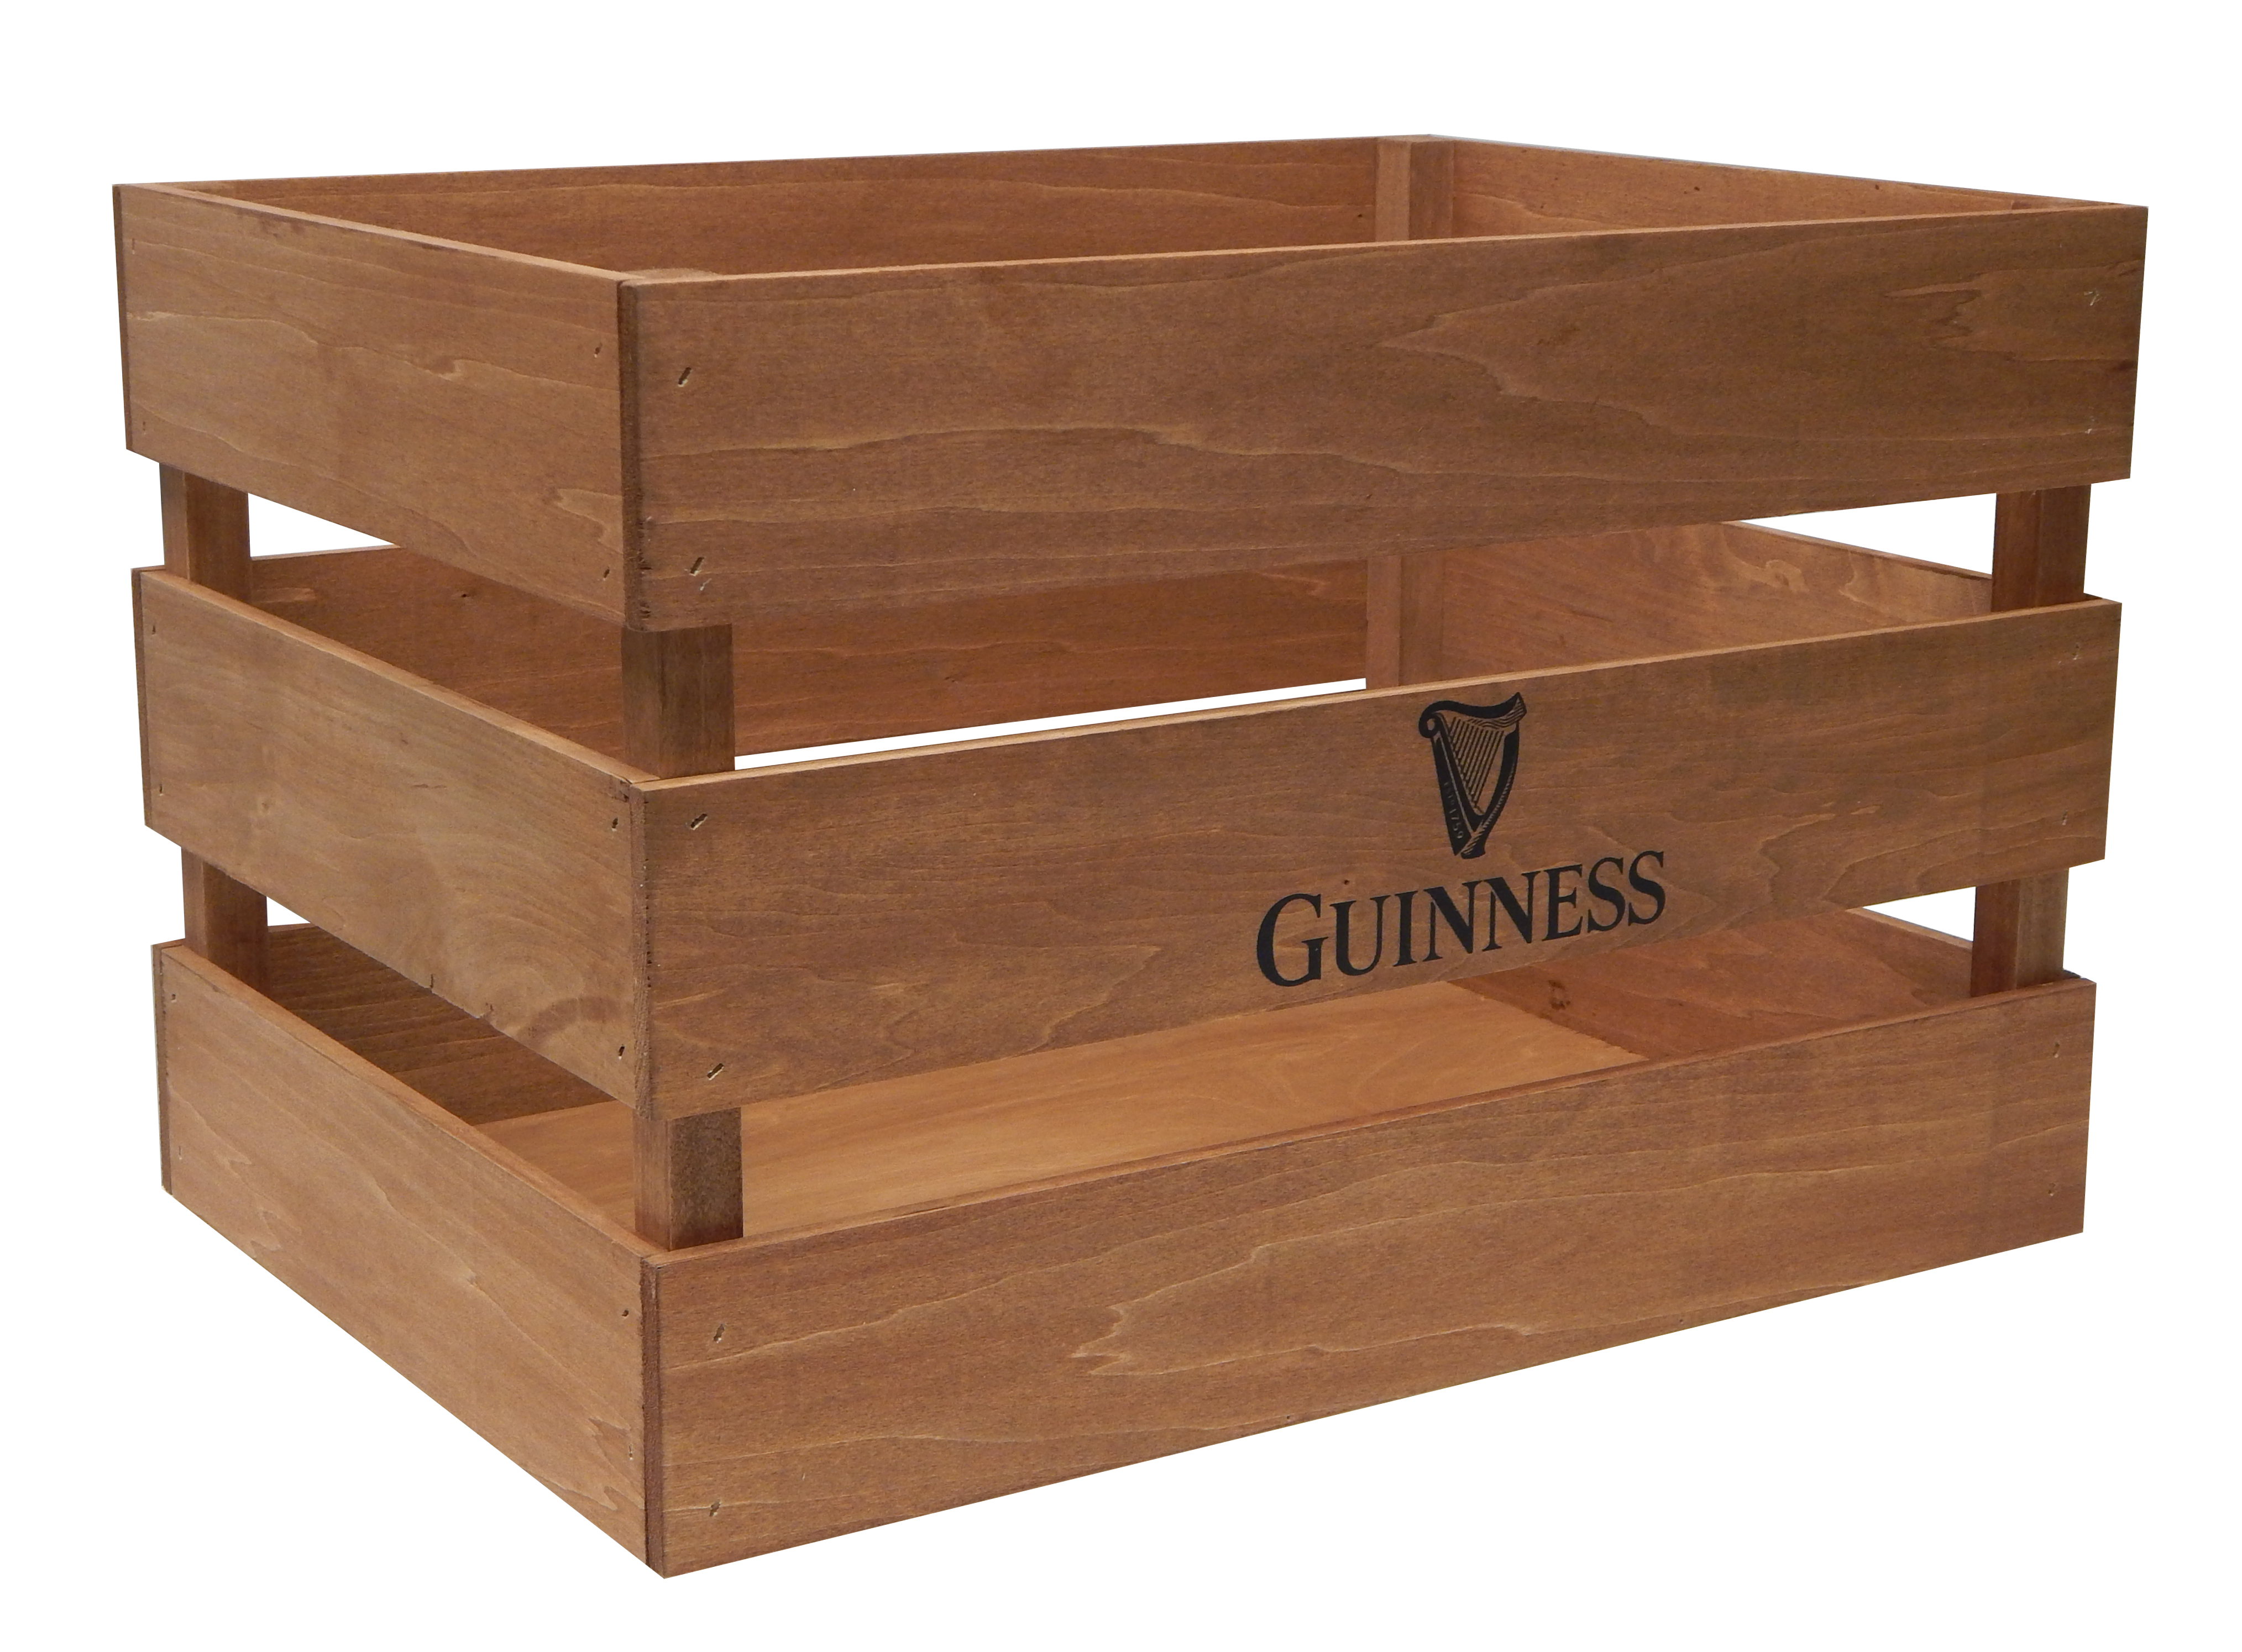 Guinness Wooden Crate